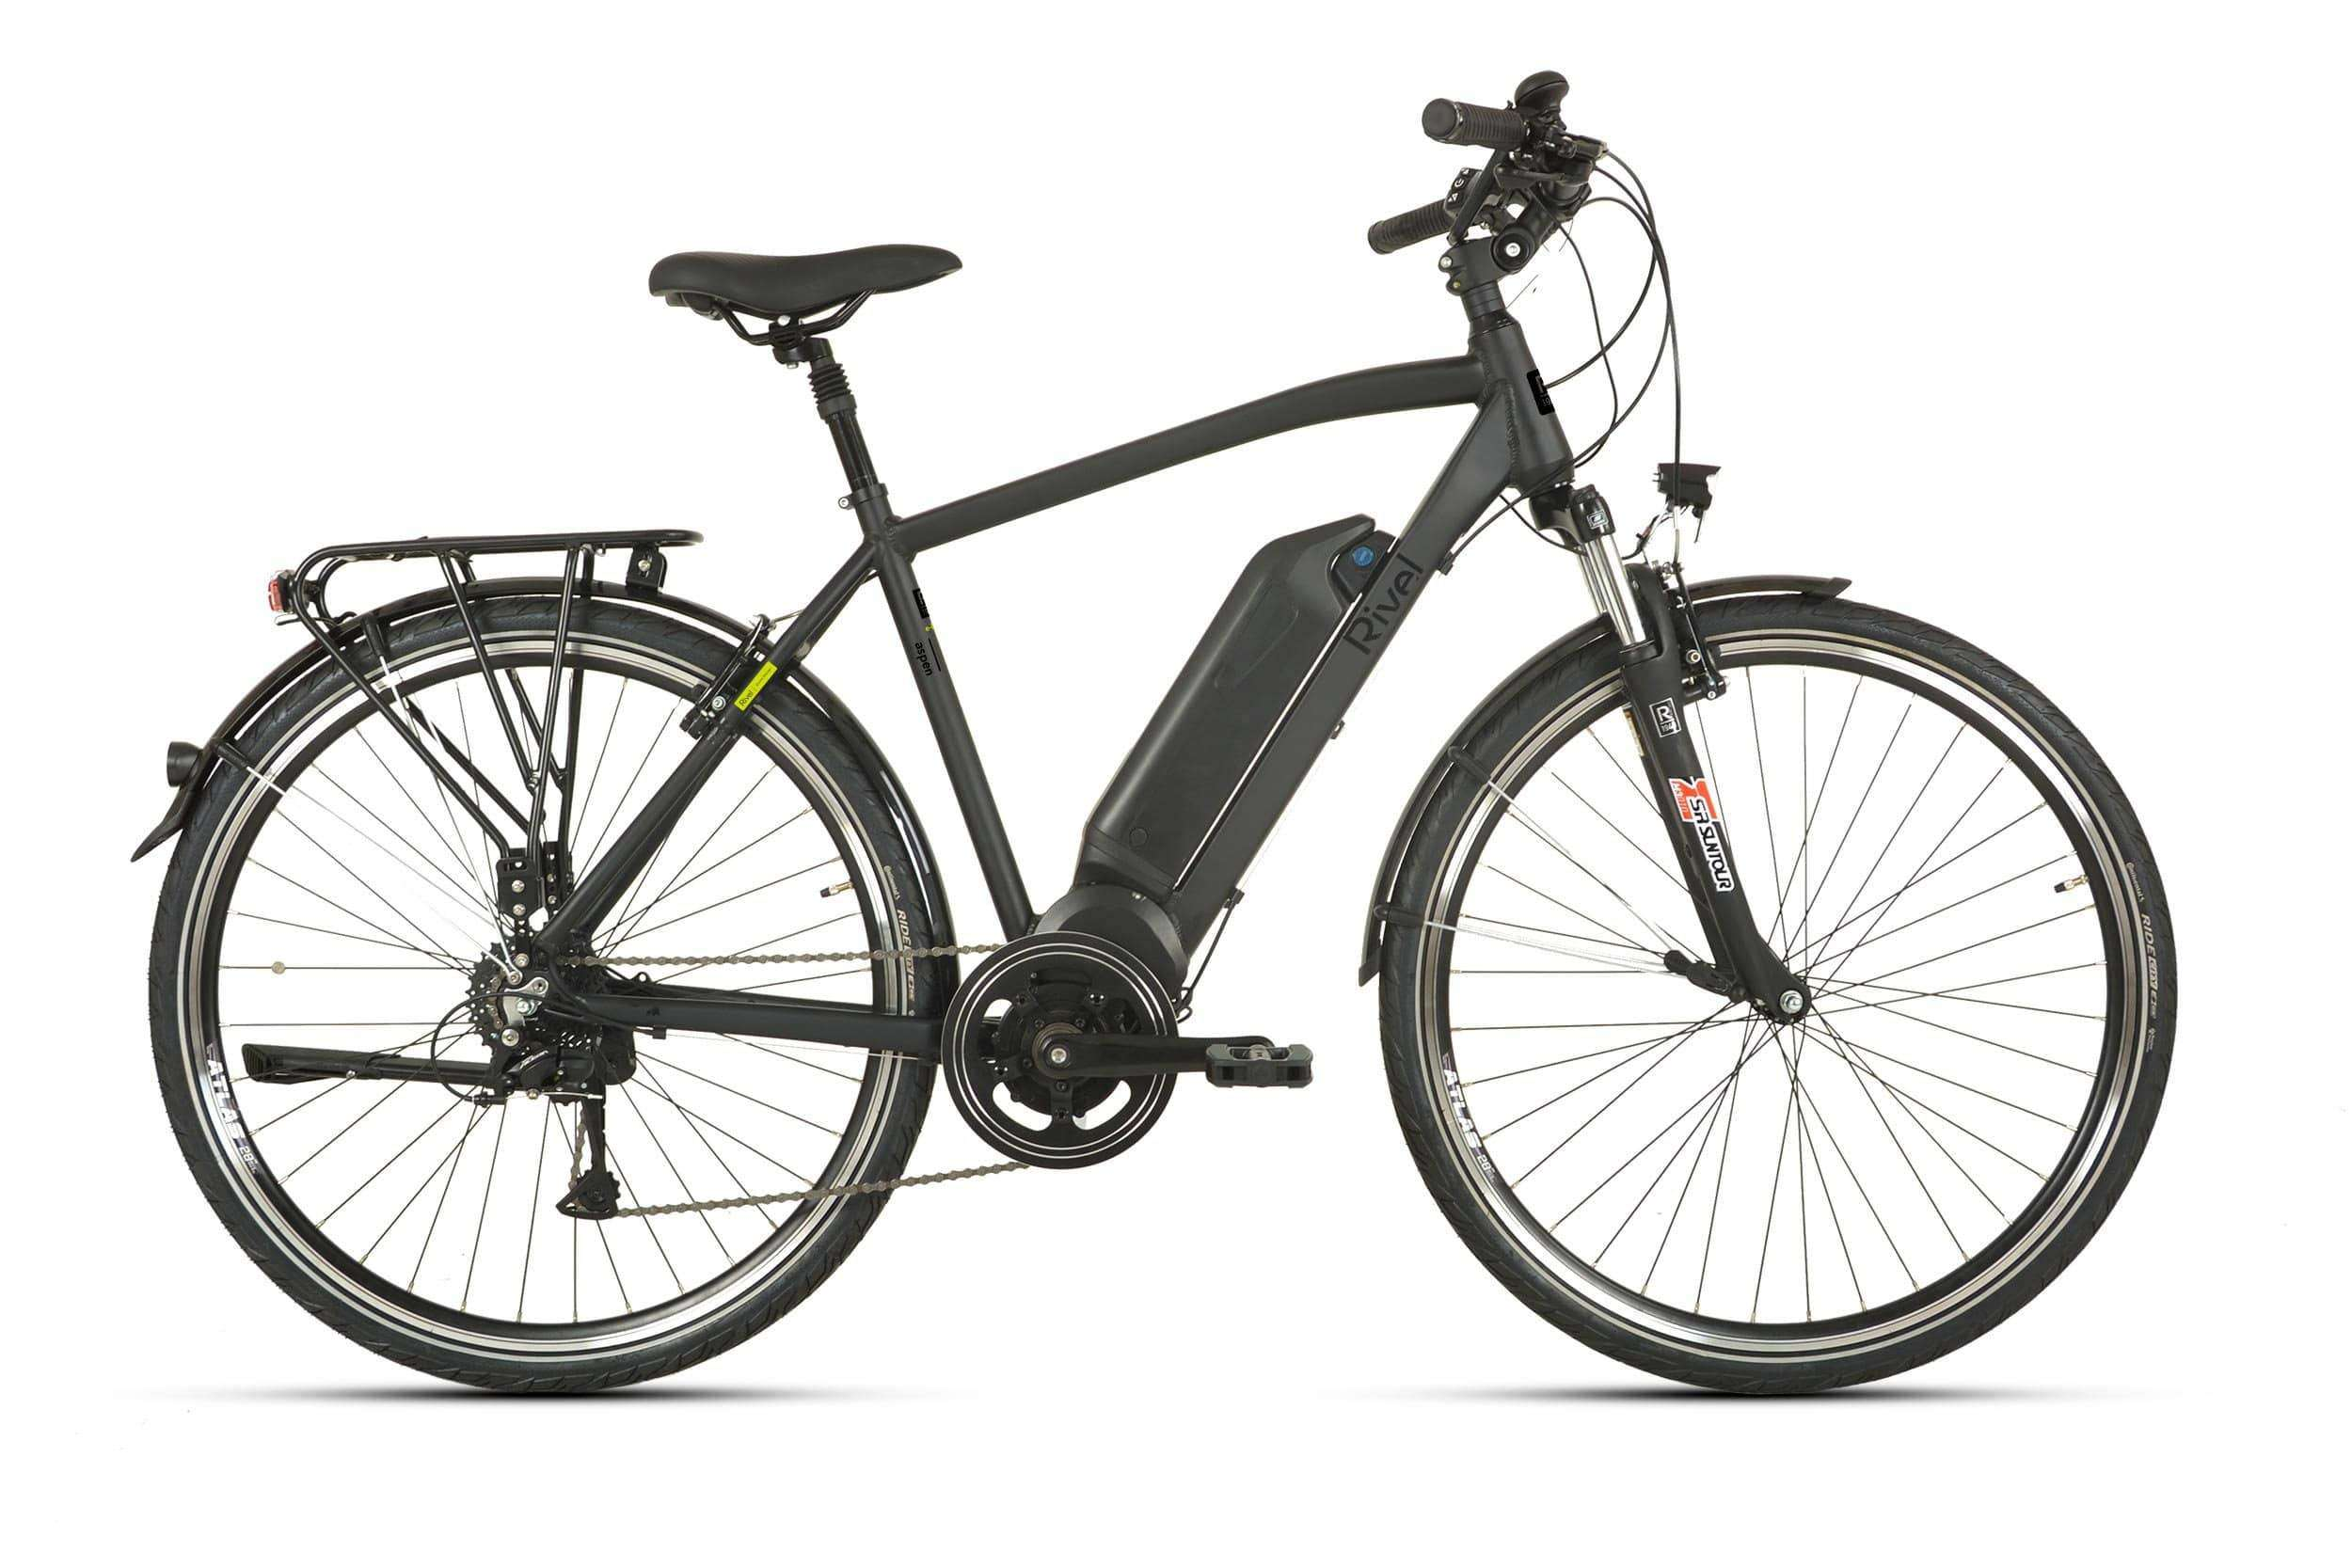 Rivel Aspen N8 2019 Heren - Fietsenconcurrent.nl